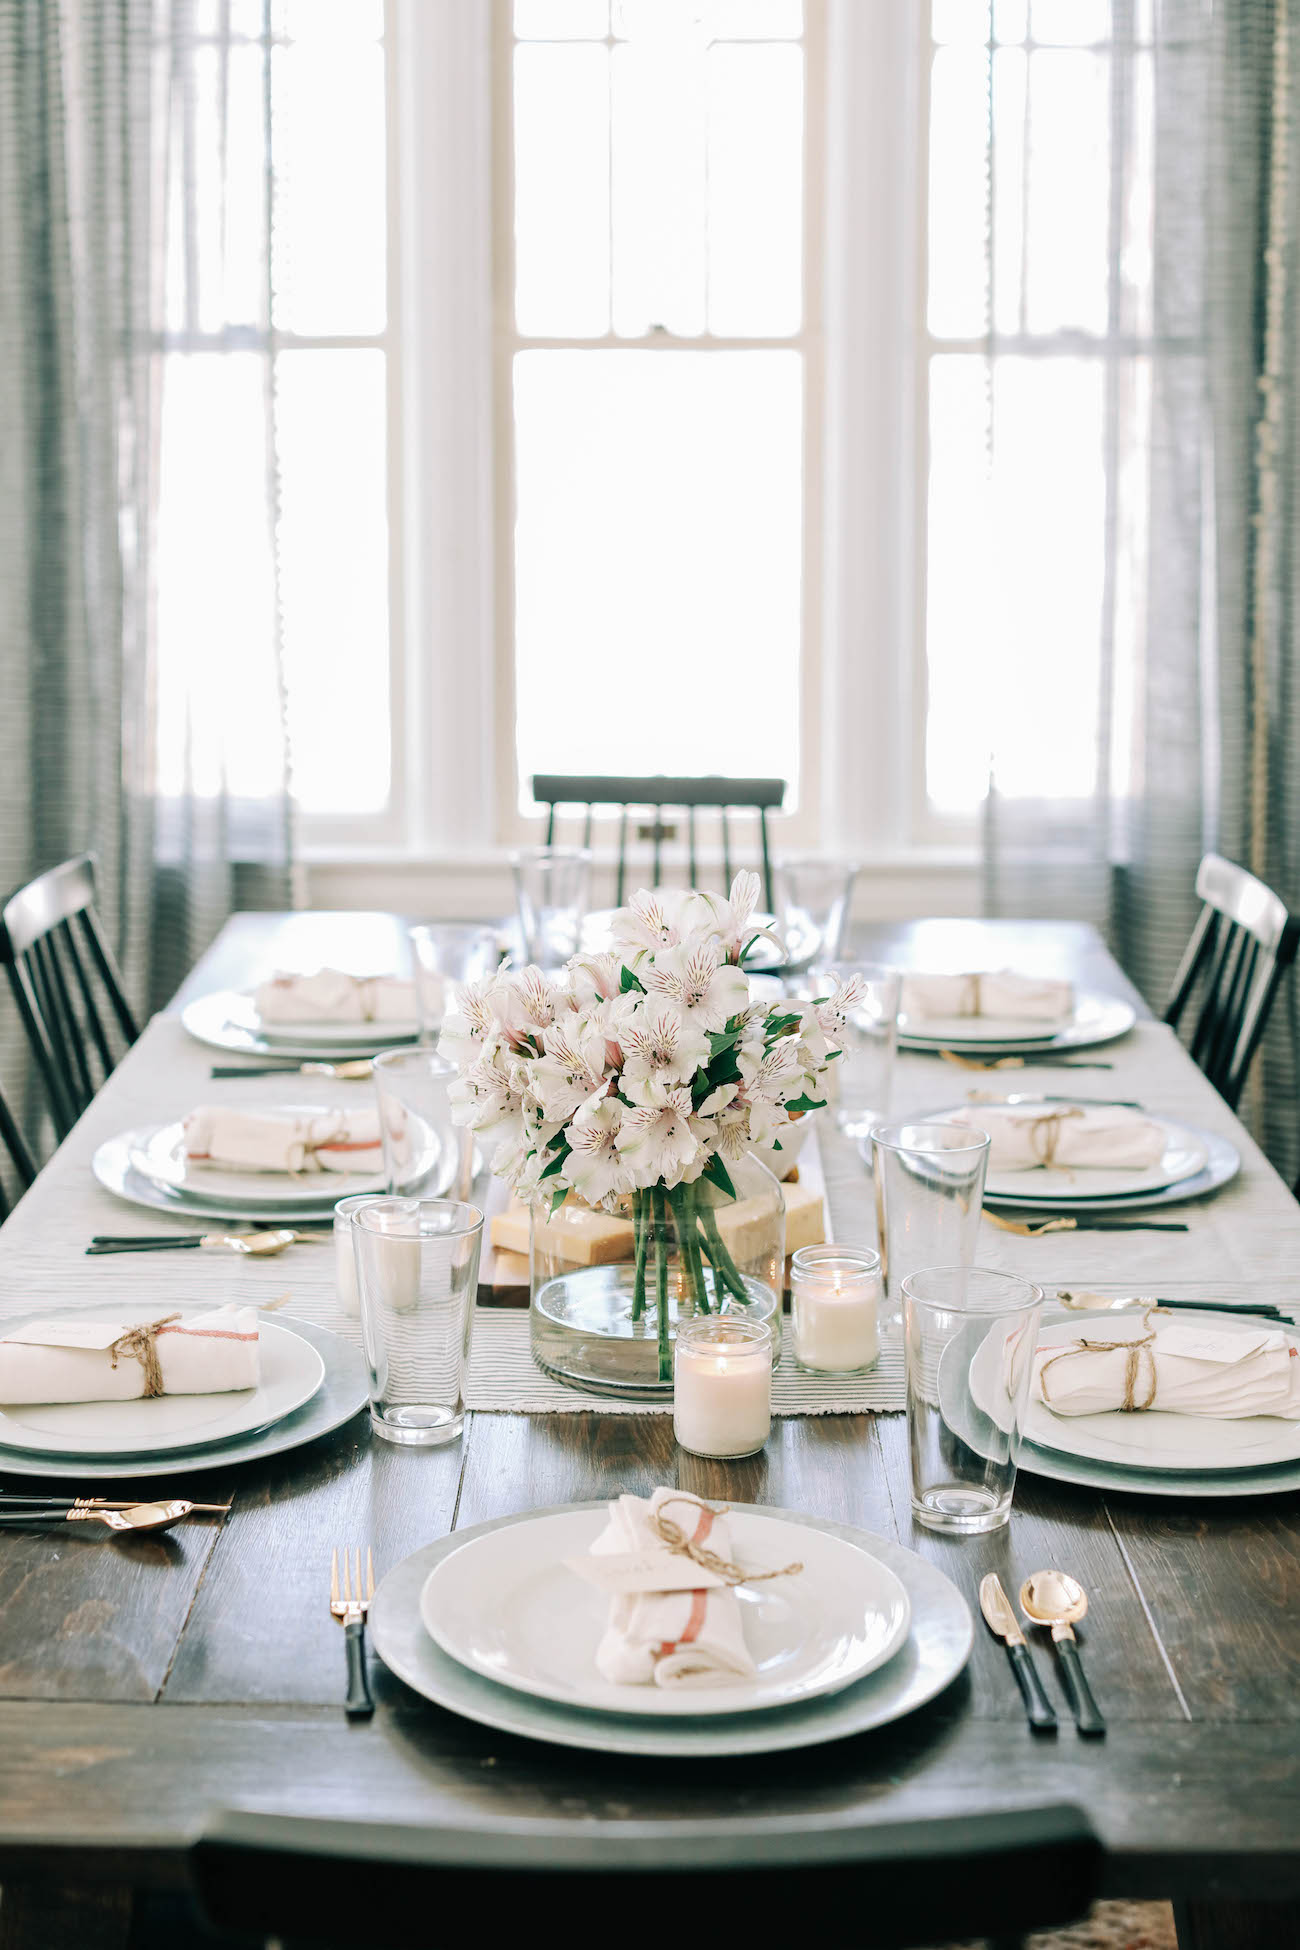 Setting the Table for a Casual Dinner Party | Dinner party ideas, party recipes, cocktail recipes and dinner party ideas from entertaining blog @cydconverse